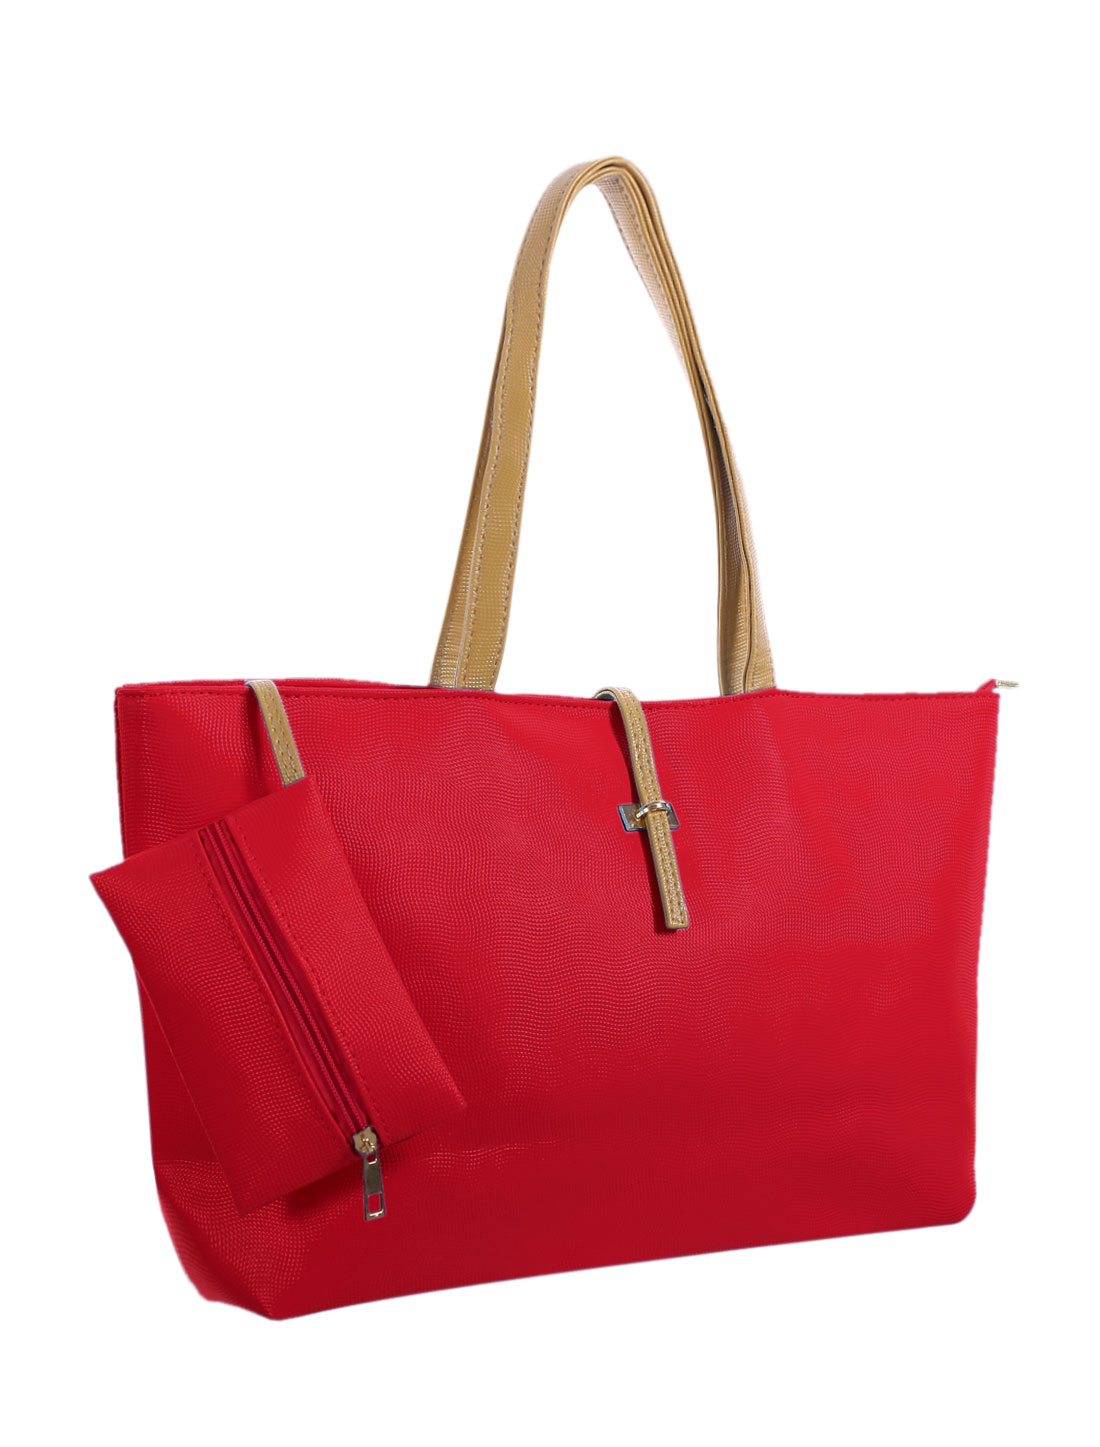 Lady Contrast-Colored Handles Faux Leather Tote w Pouch Red